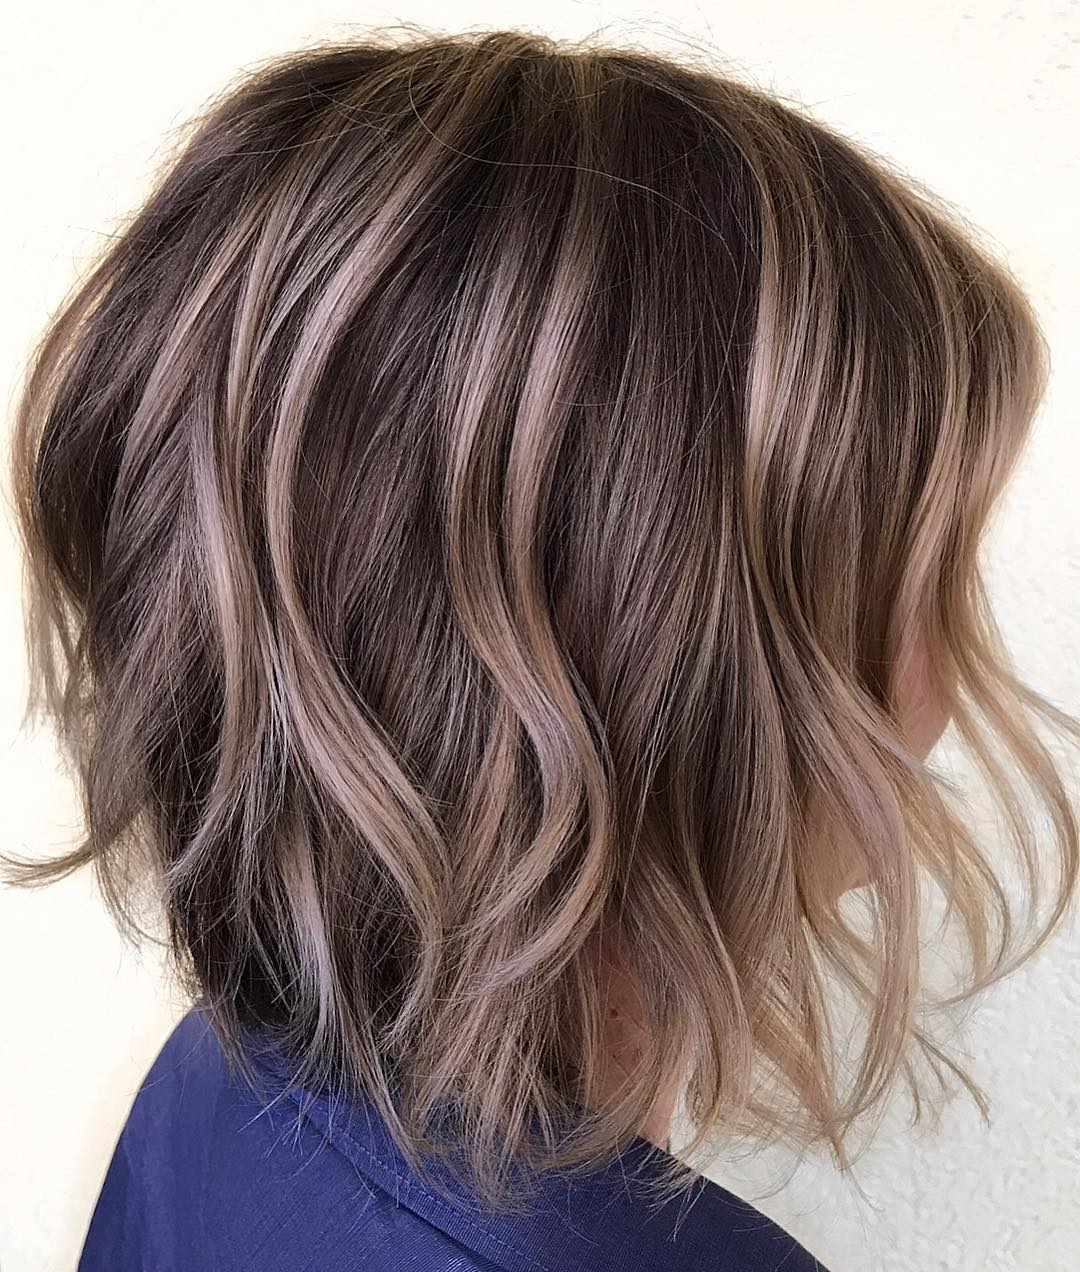 Wavy Layered Brunette Bob with Beige Highlights